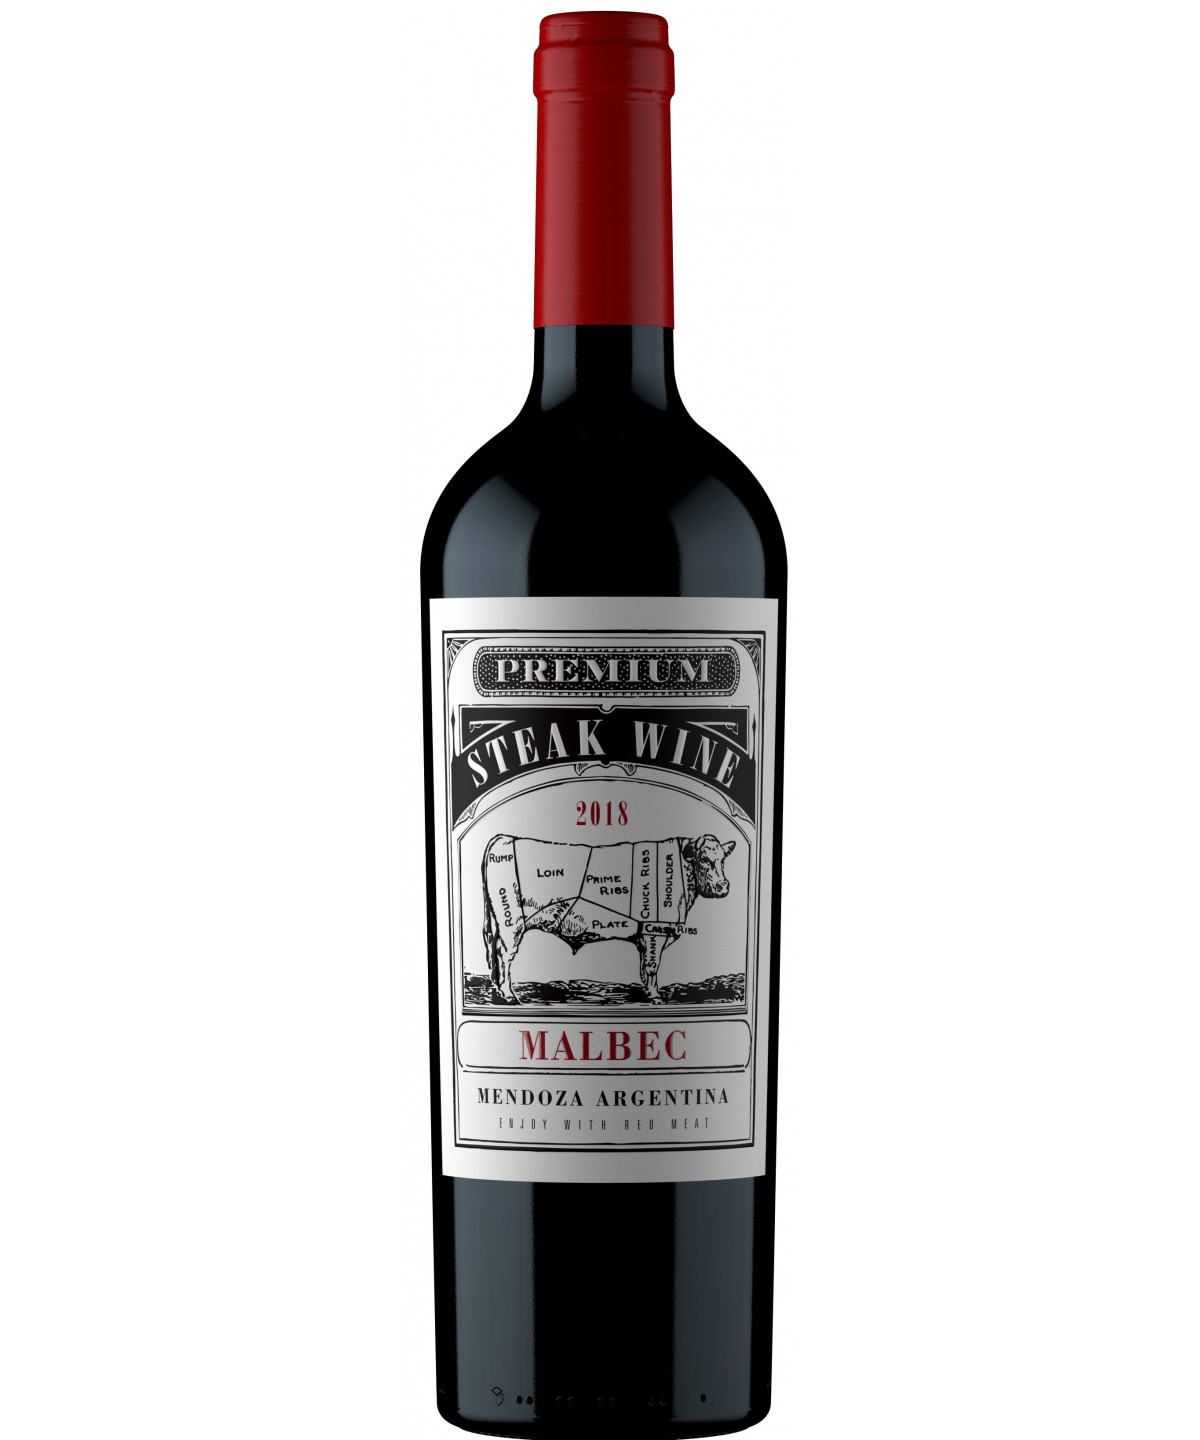 Steak Wine - Malbec - Mendoza